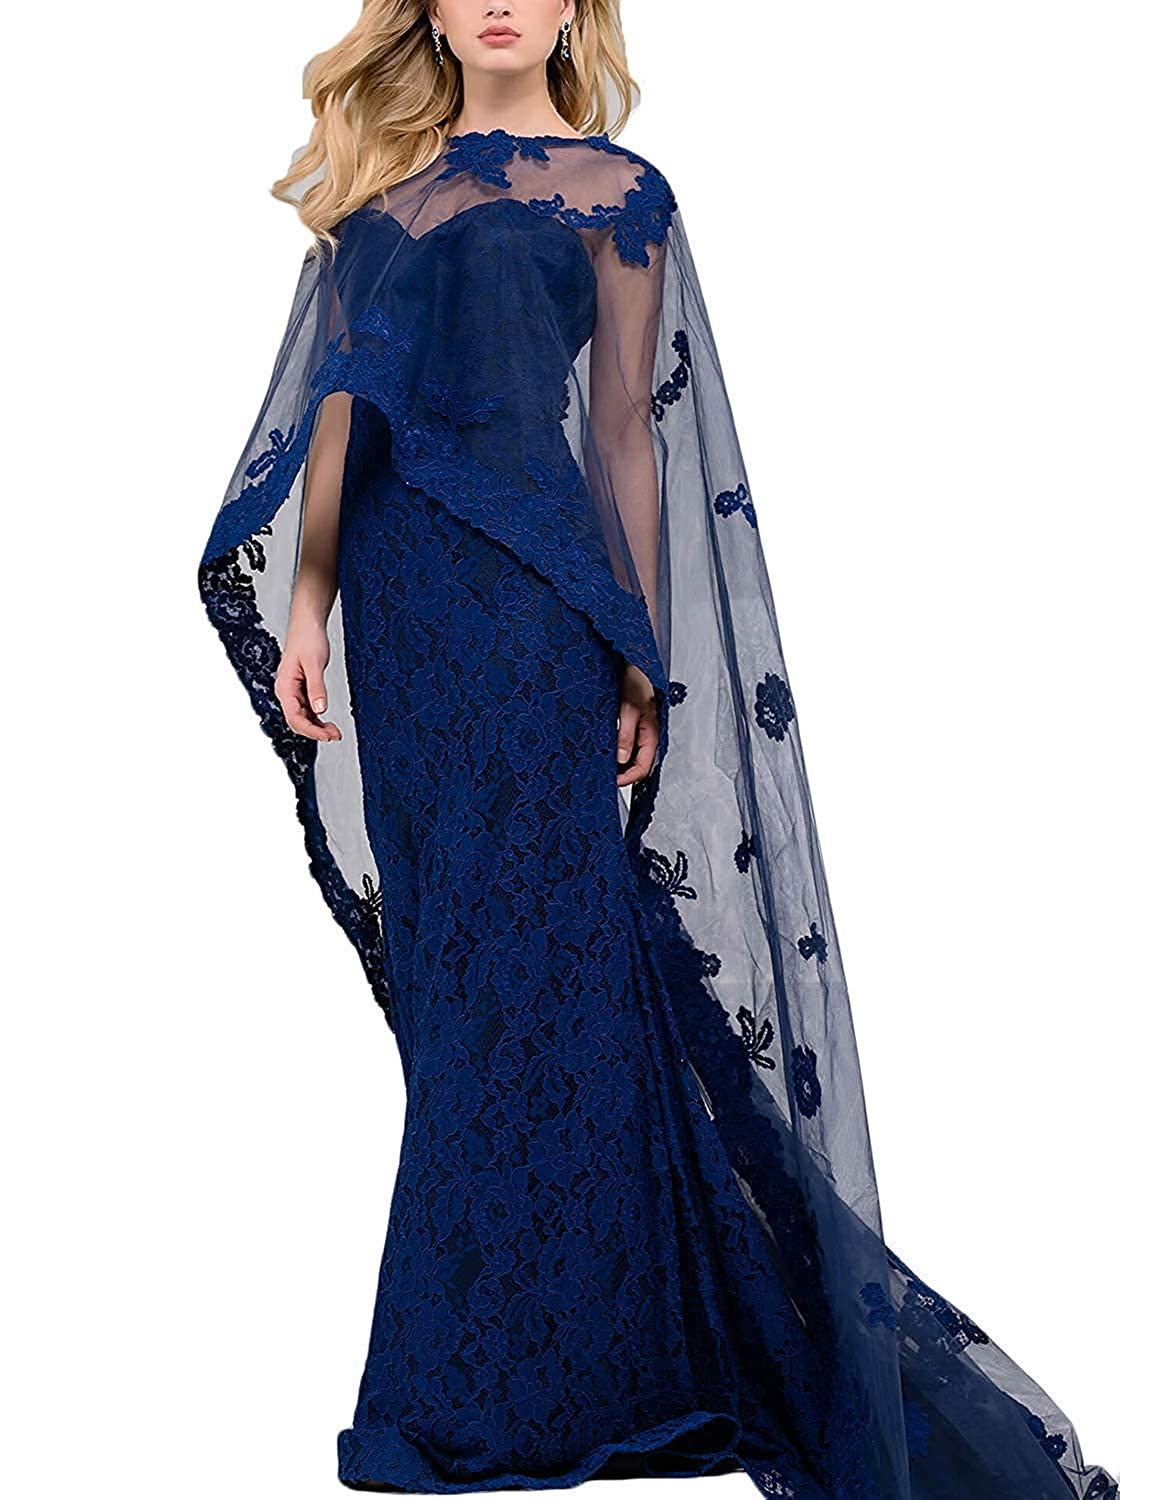 Dark bluee LiBridal Women's Lace Evening Prom Dresses Cape Mermaid 2018 Formal Long Gown